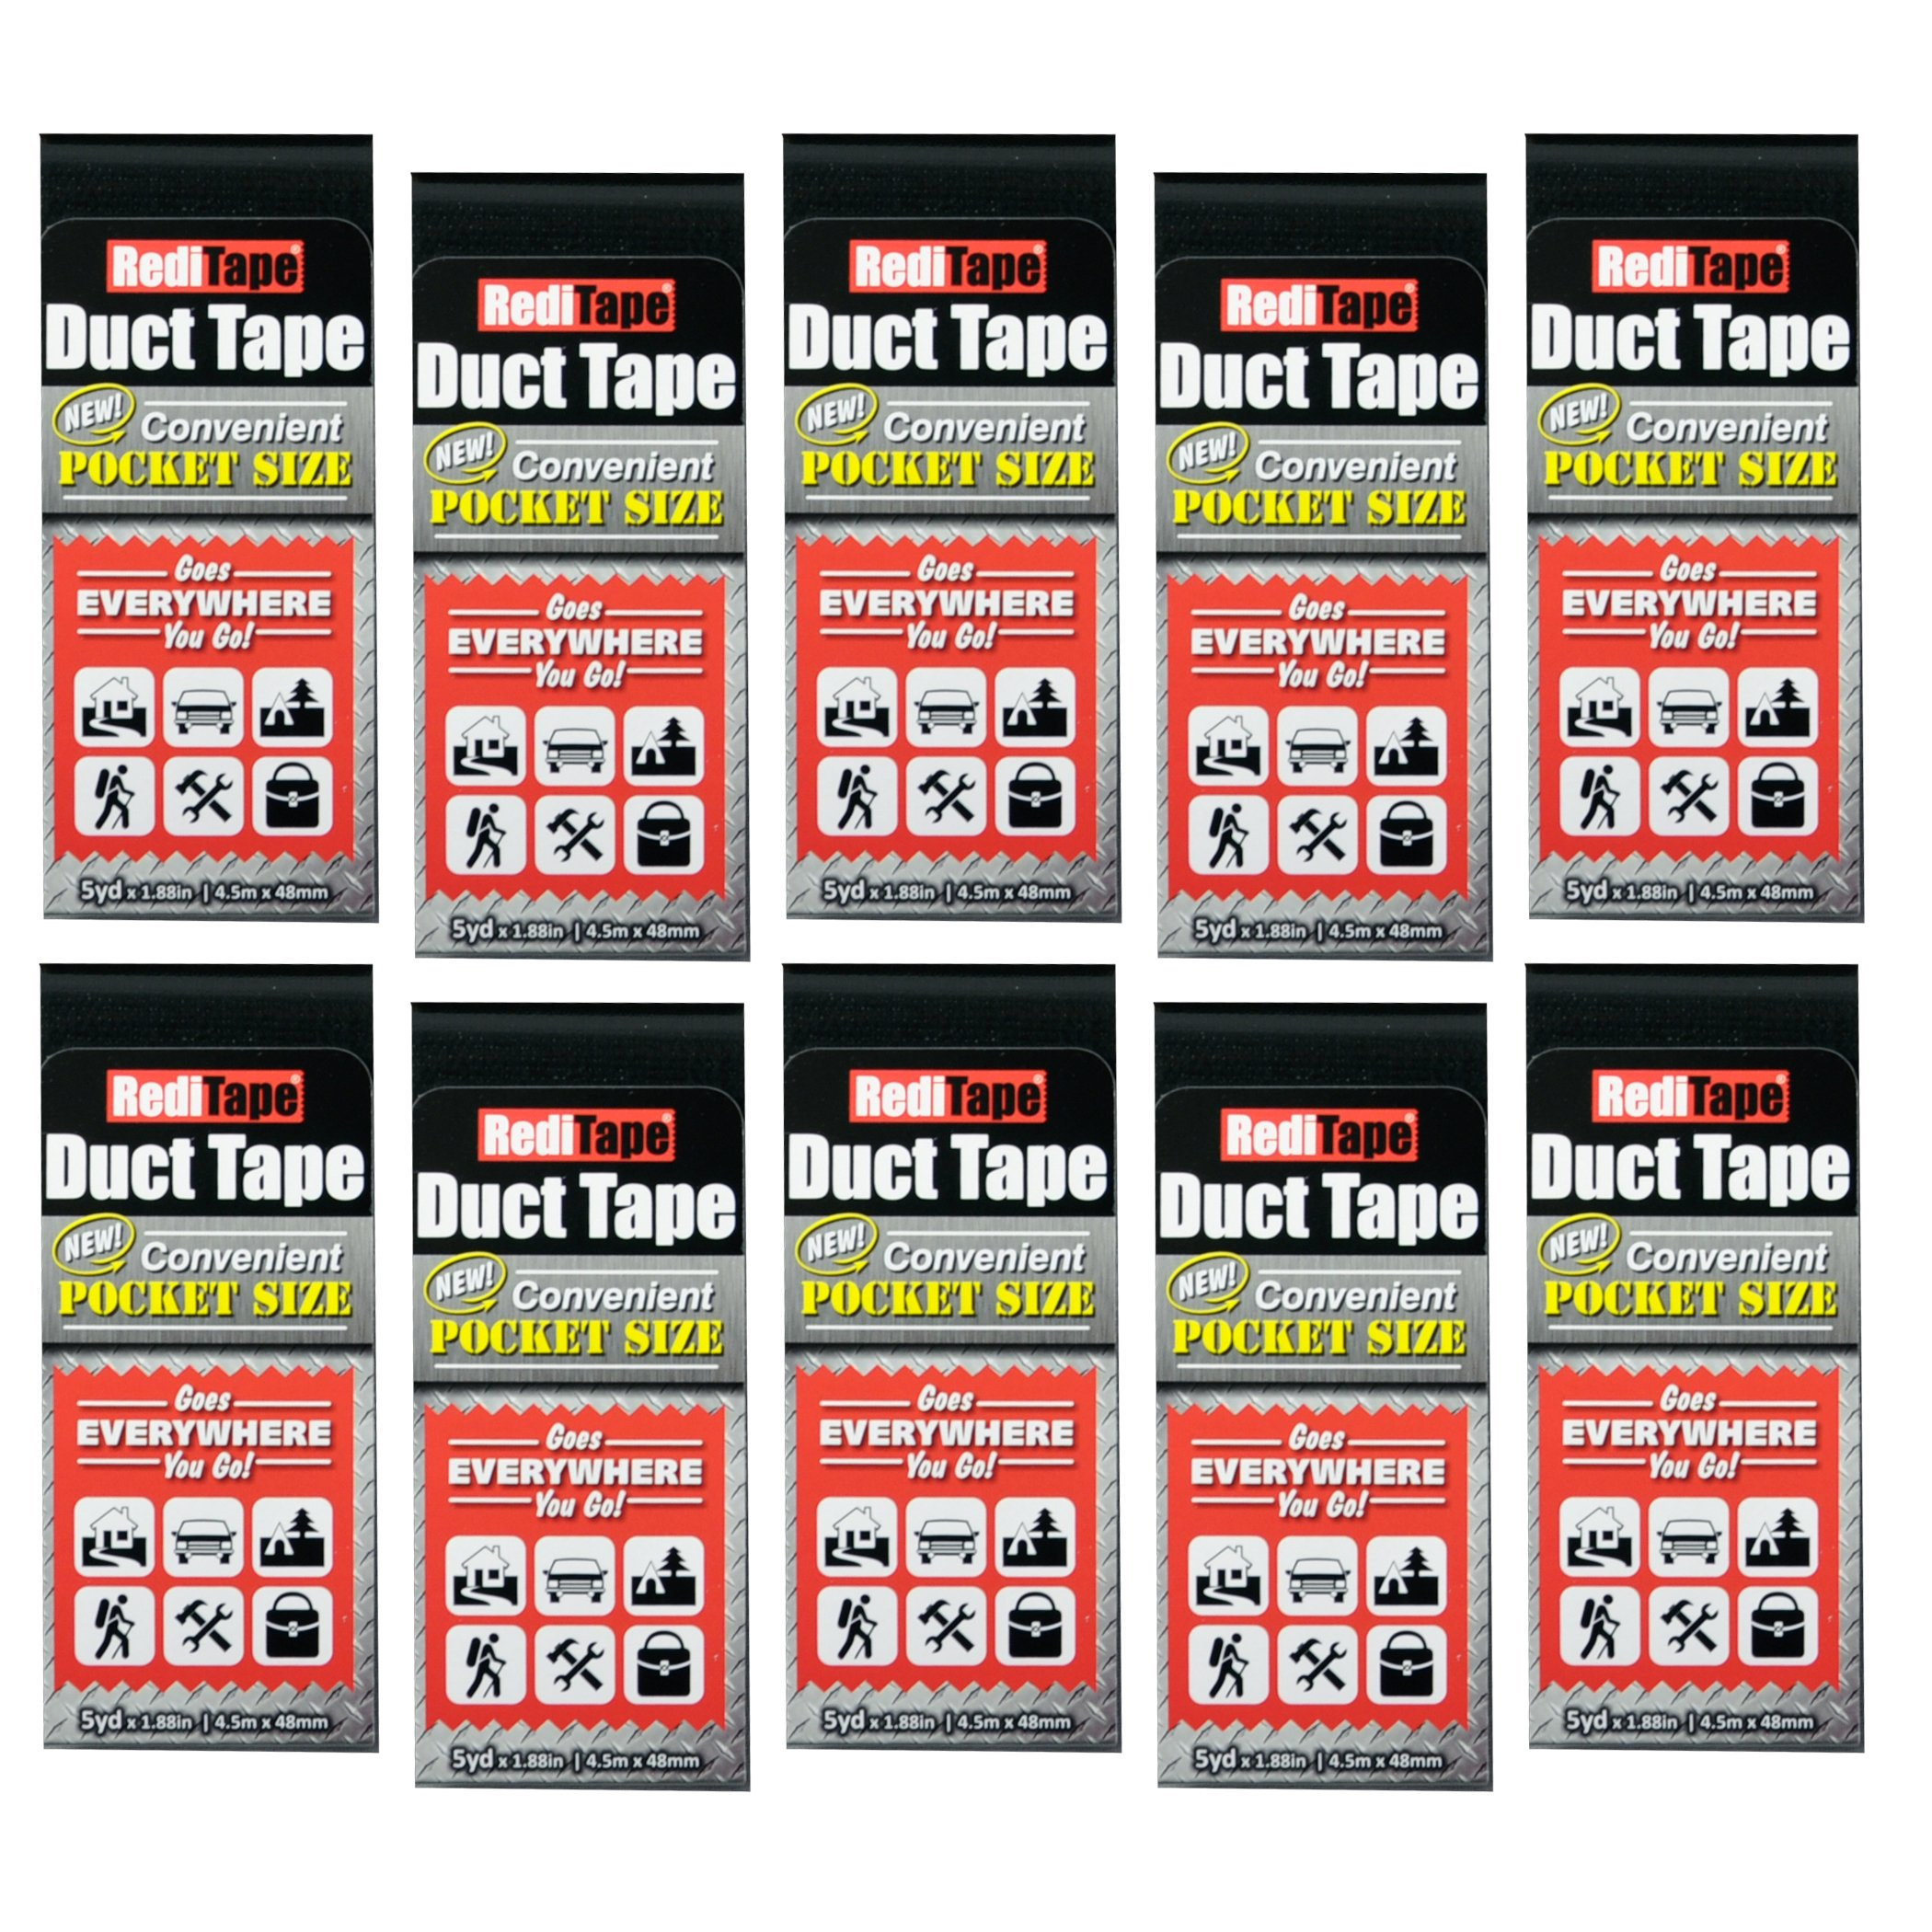 REDITAPE Travel Size Flat Fold Duct Tape | Multi-Pack Gaffer Tape: Black | 10 Pack (10940)